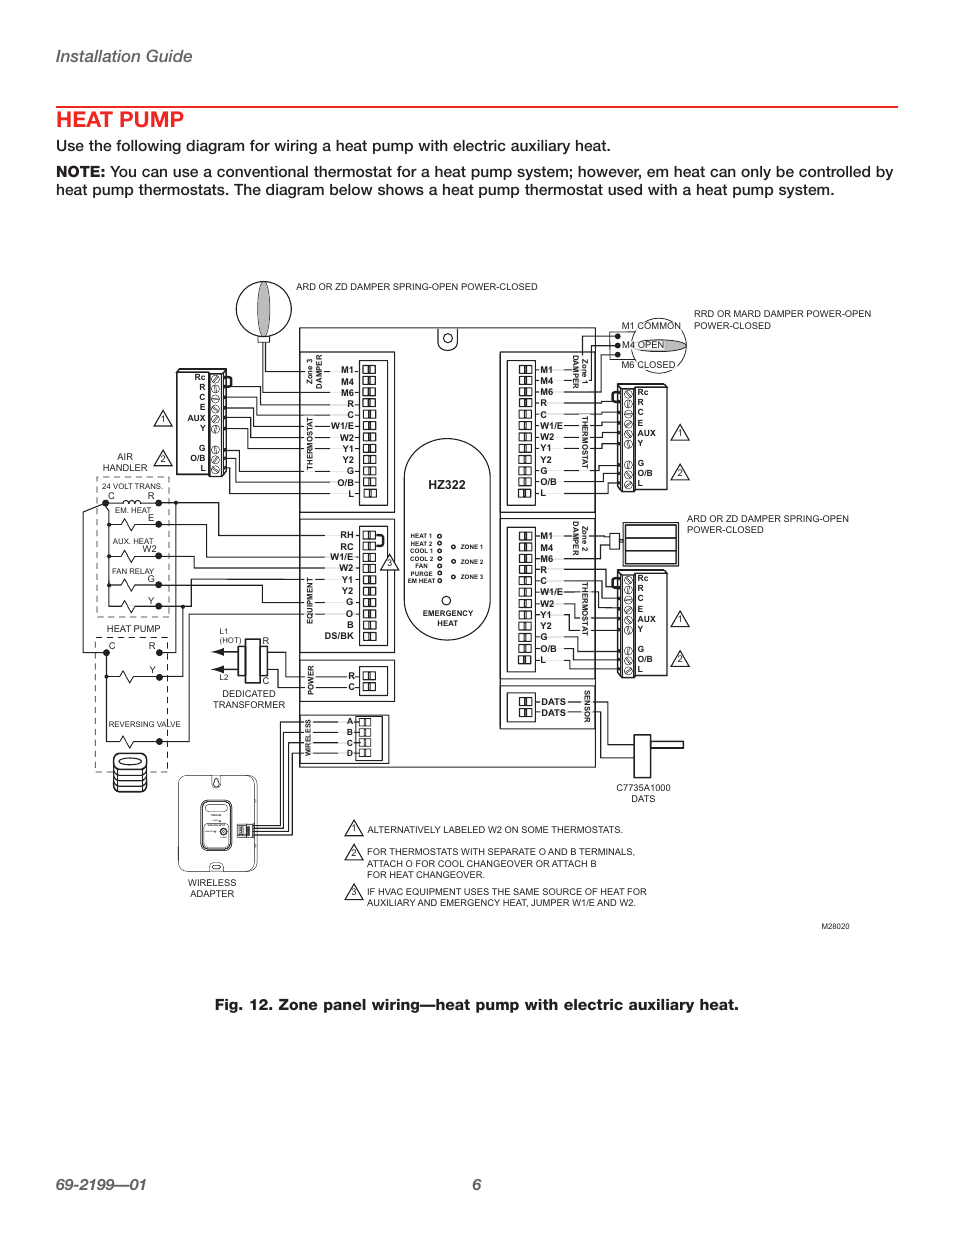 Wire Diagram Honeywell Hz322 Wiring And Ebooks Zoning Heat Pump Installation Guide Connect Power Truezone Rh Manualsdir Com Forced Air Zone Control